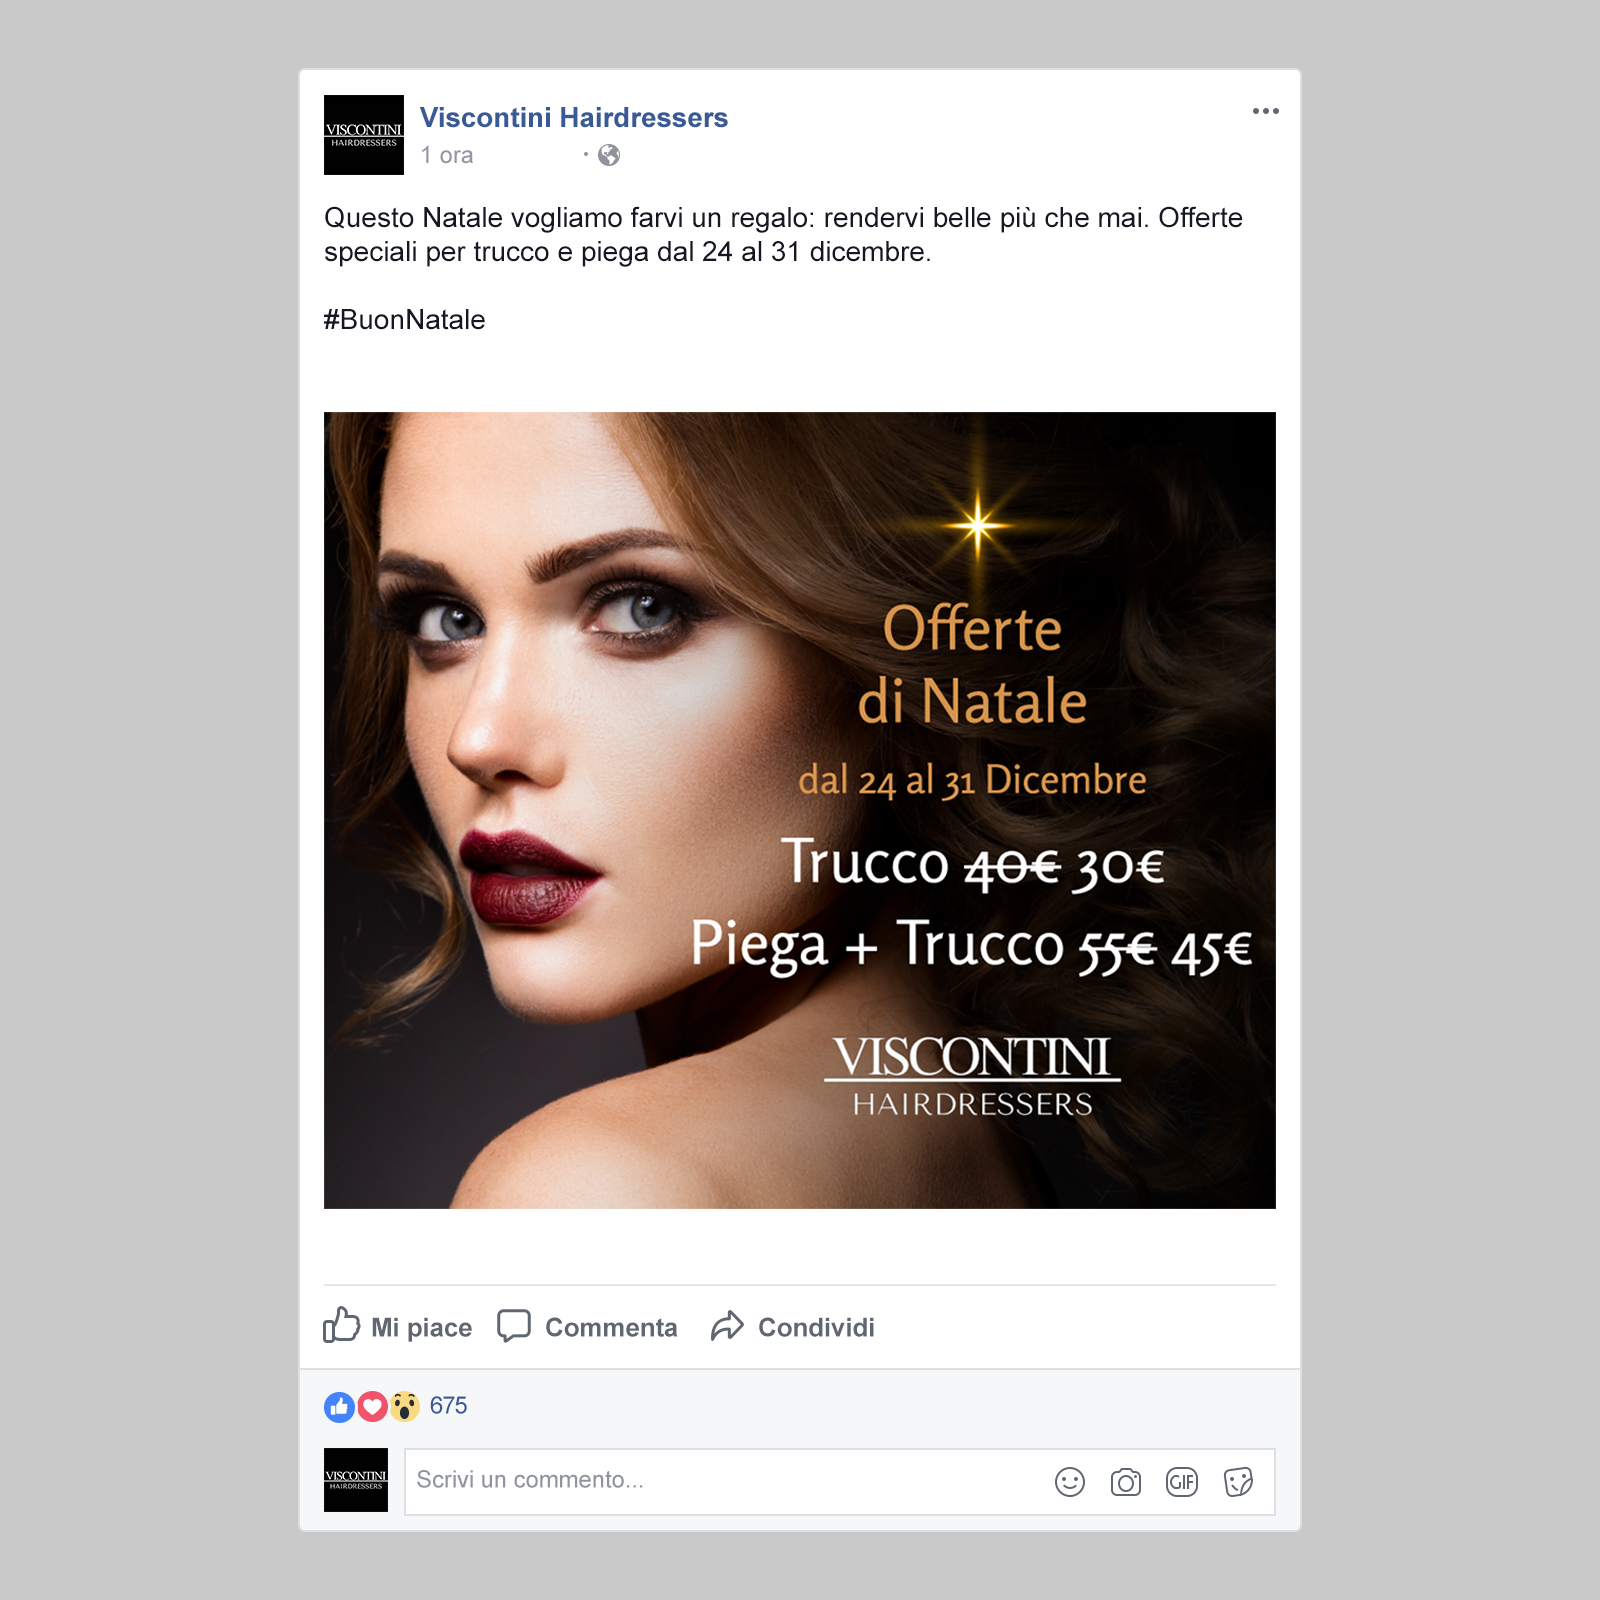 Locandina Facebook Viscontini Hairdressers